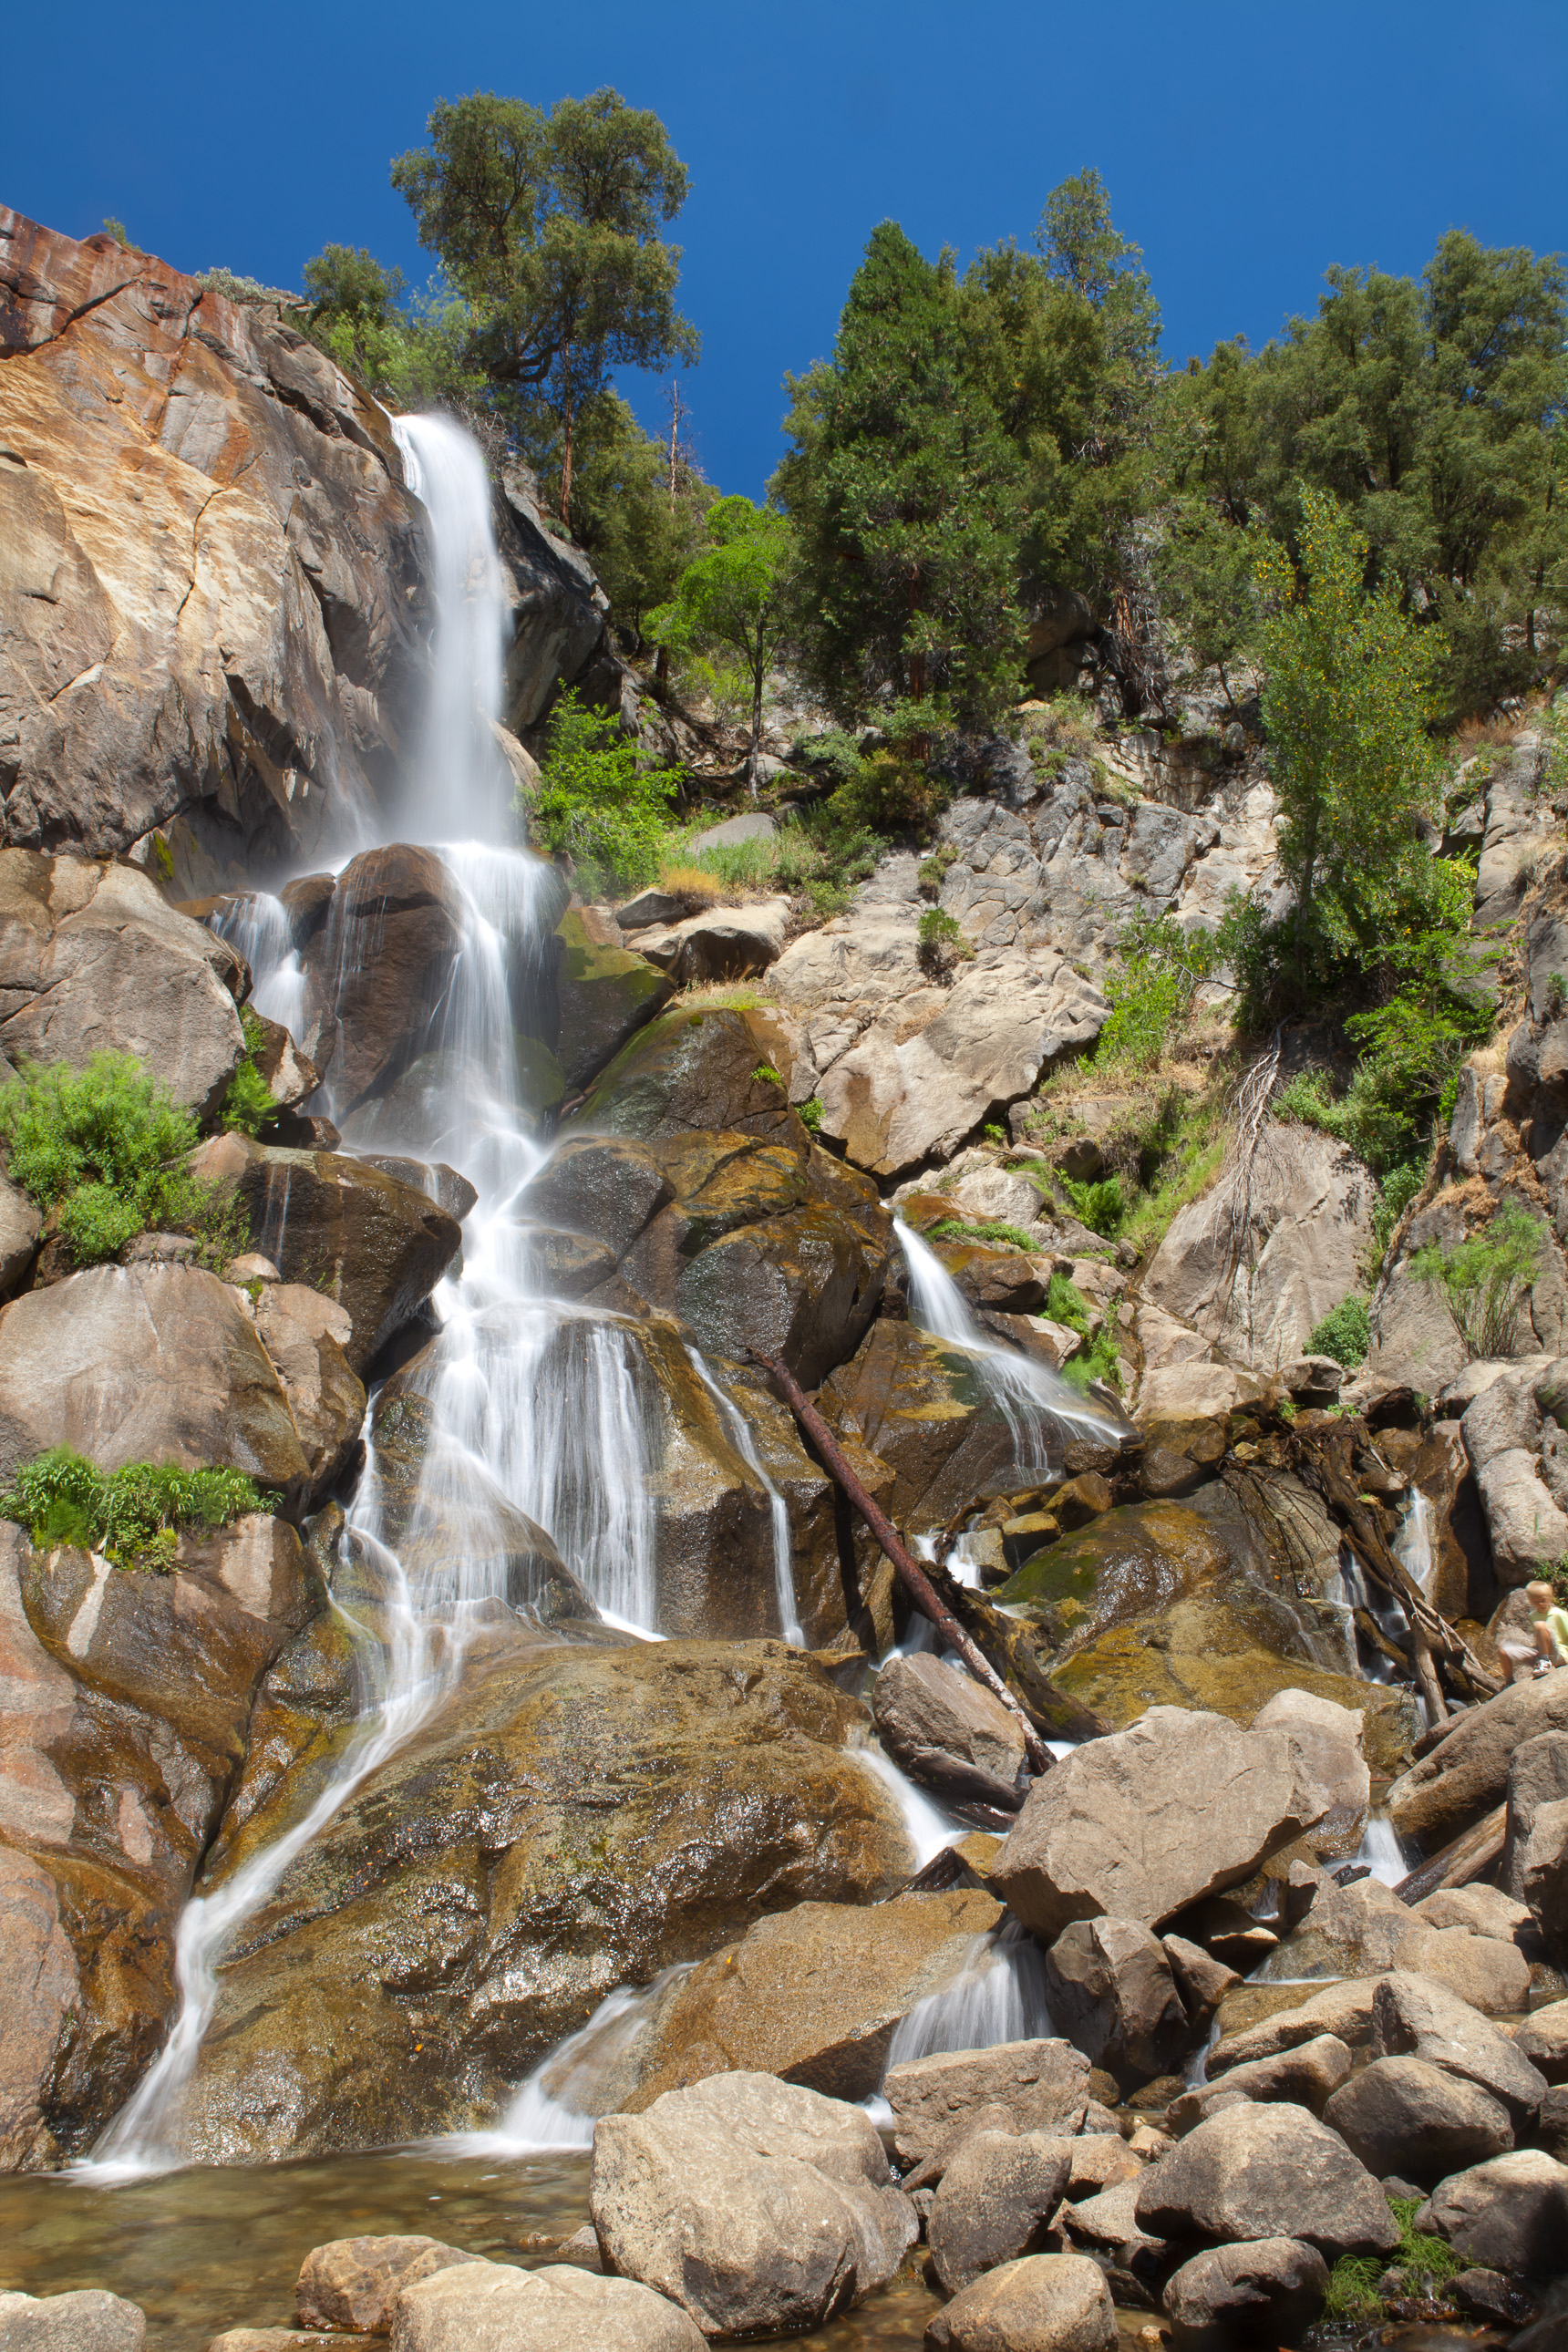 Grizzly Falls in Kings Canyon National Park